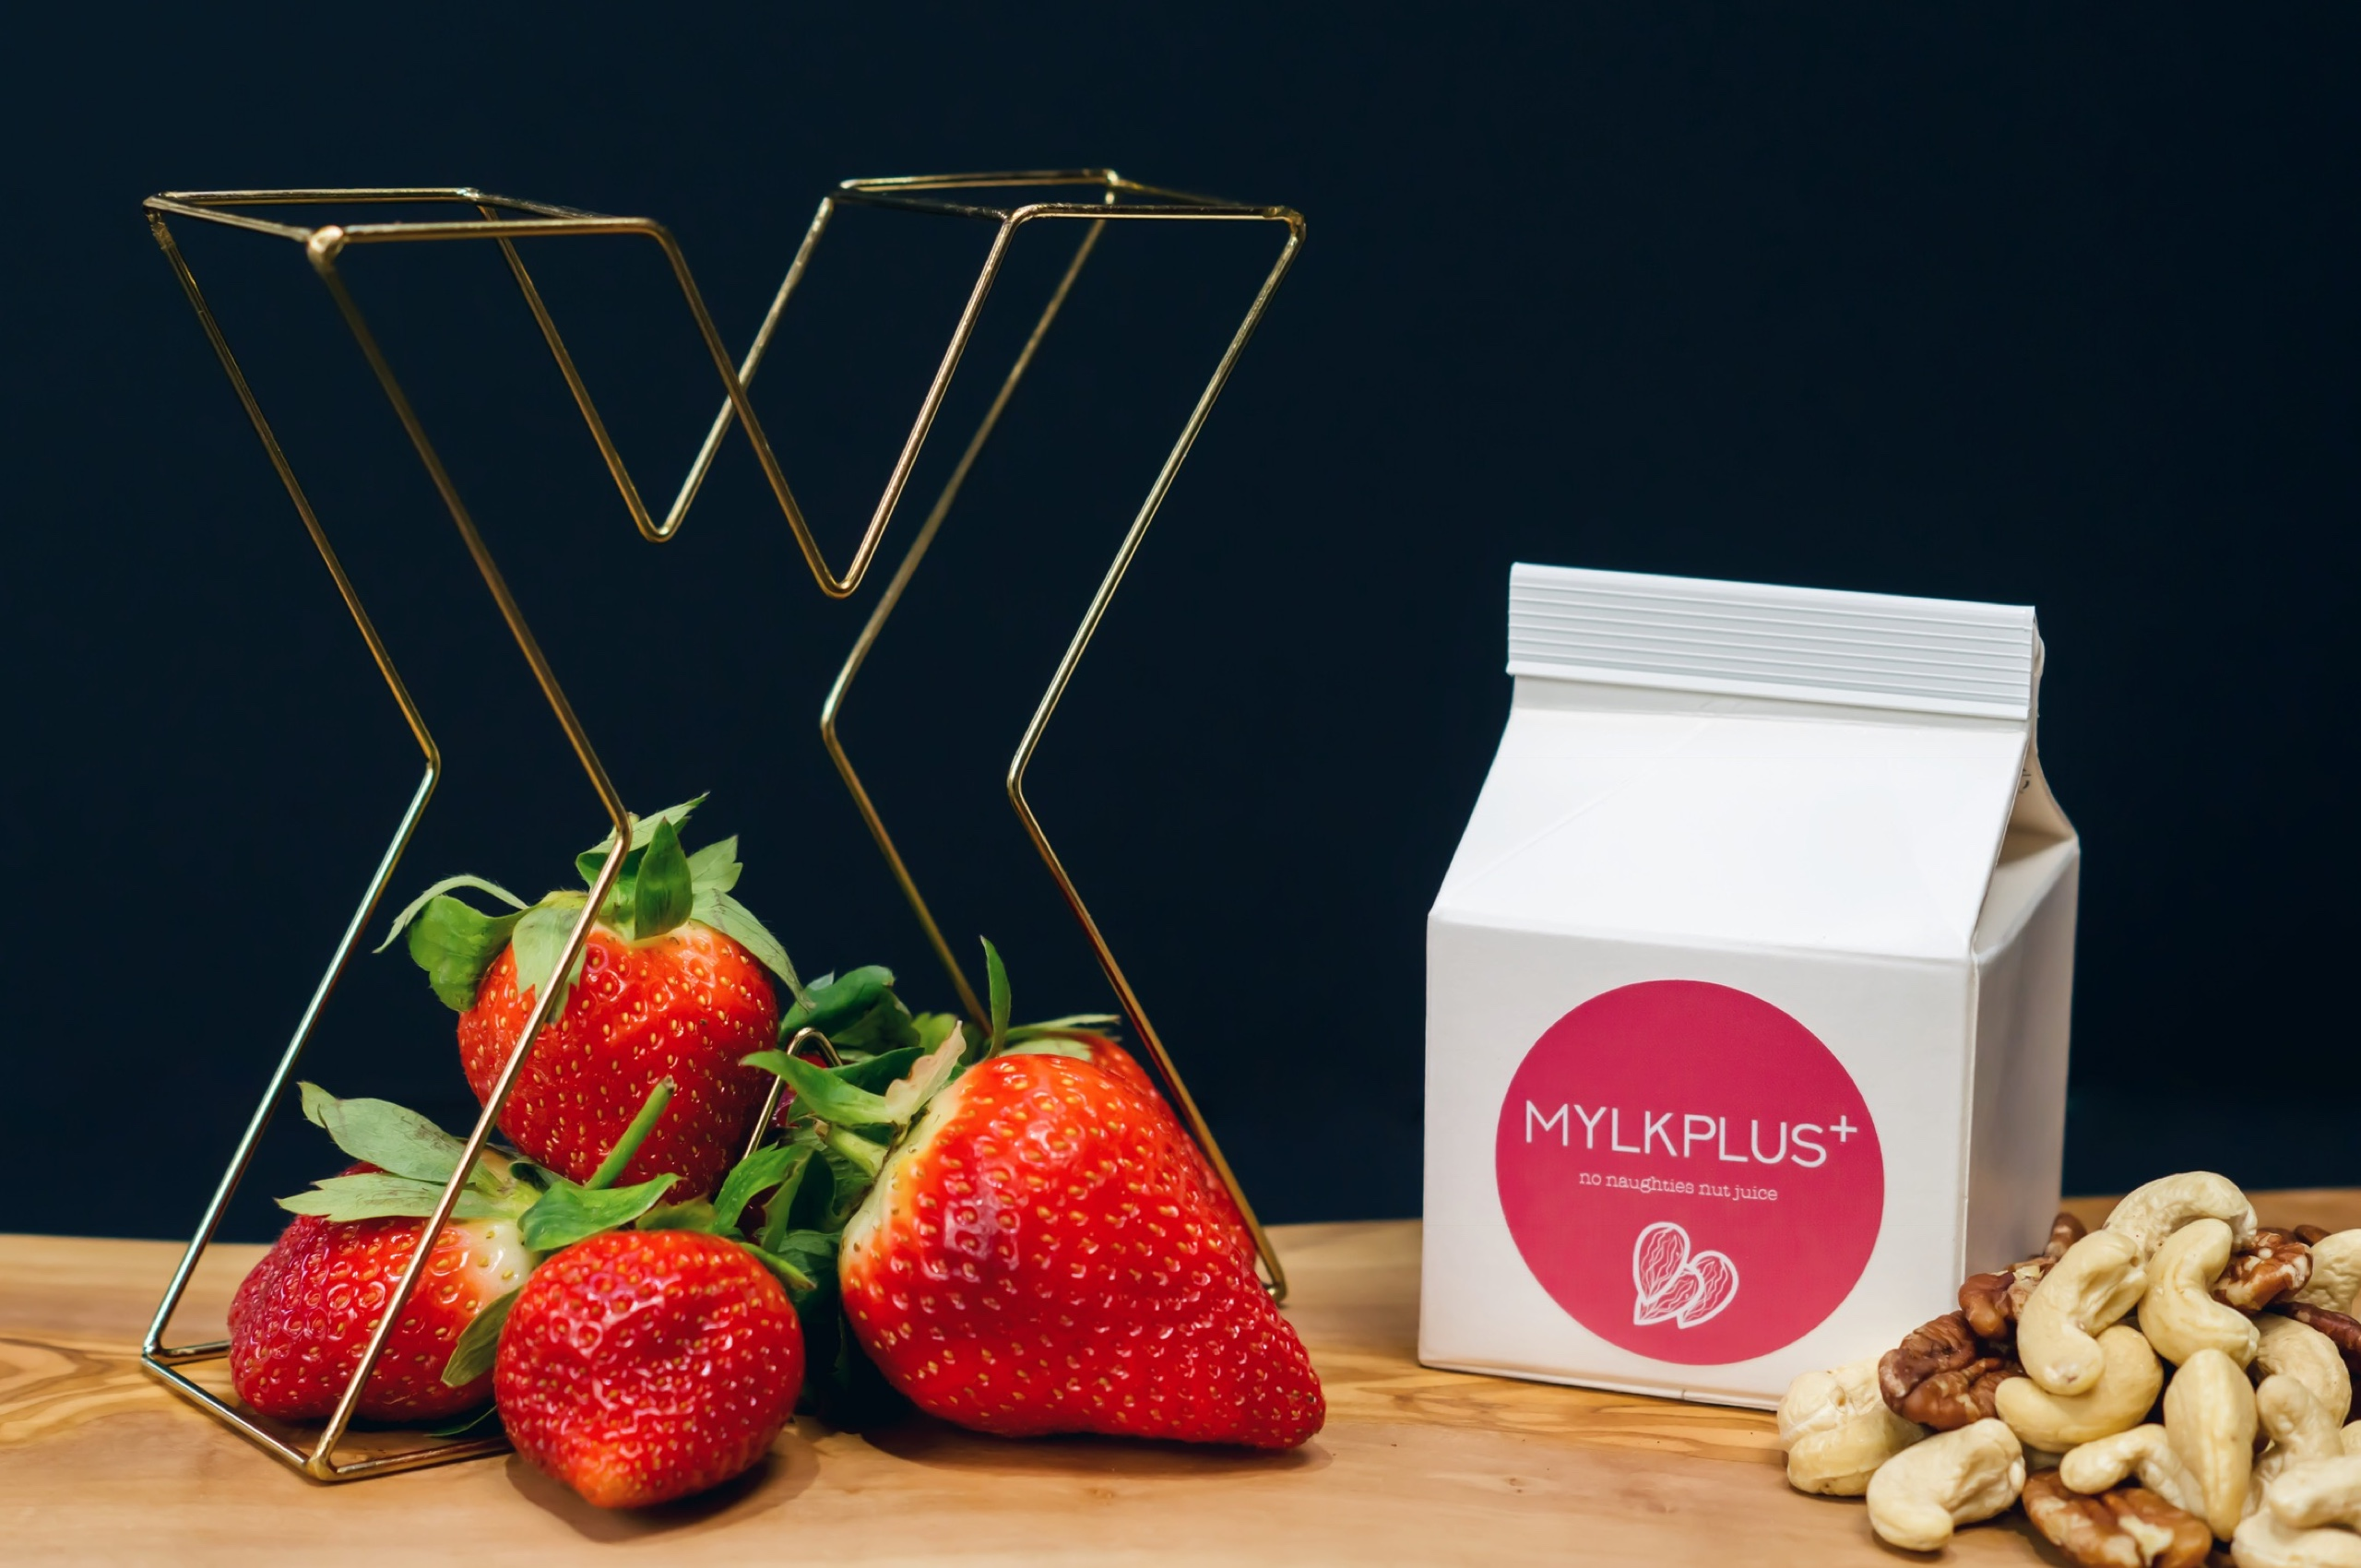 Product photography for MYLKPLUS+ product range